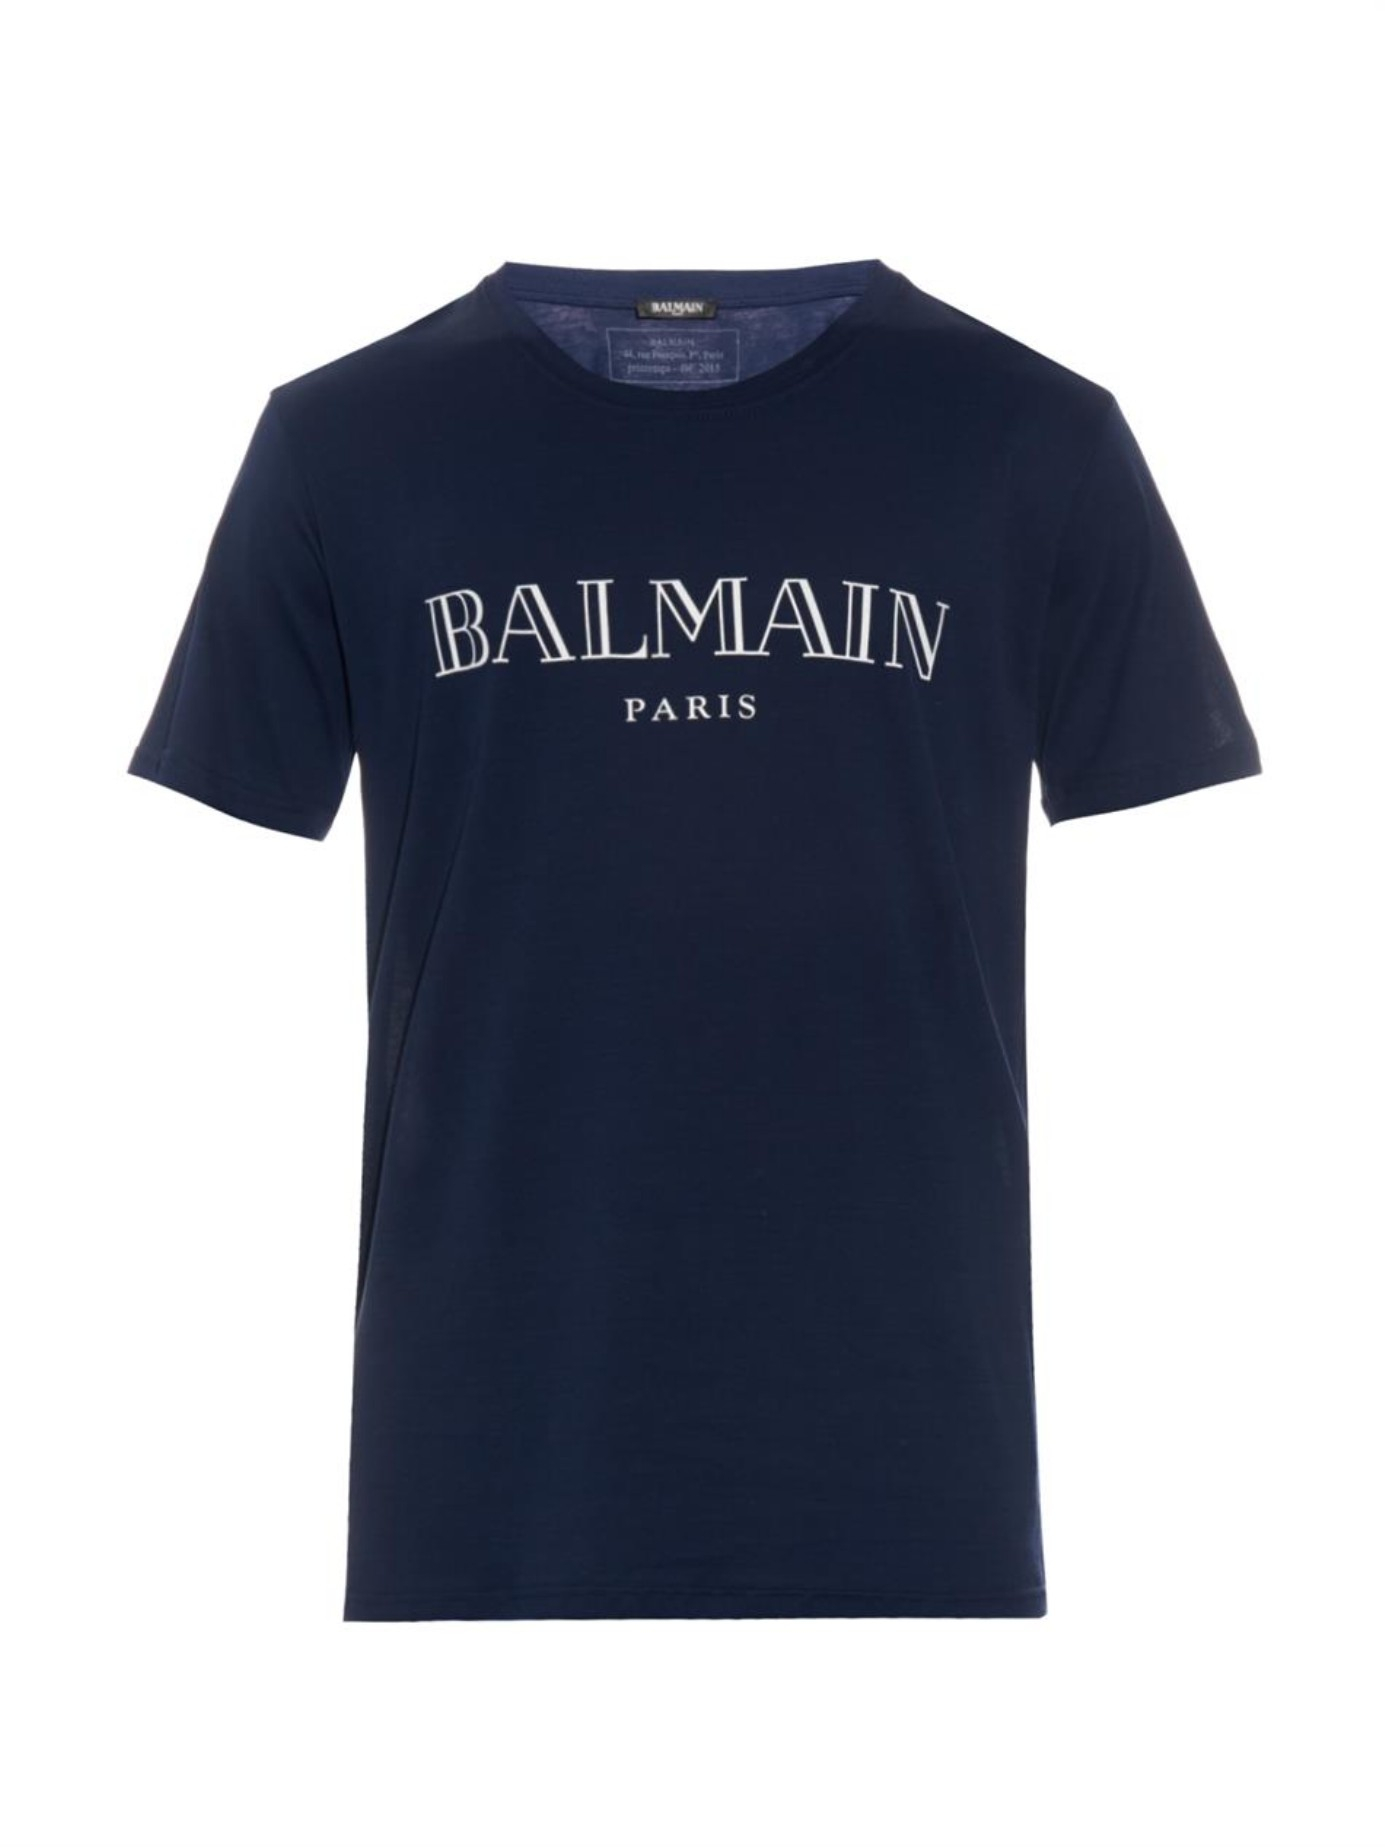 Balmain logo print cotton jersey t shirt in blue for men for Tee shirt logo printing